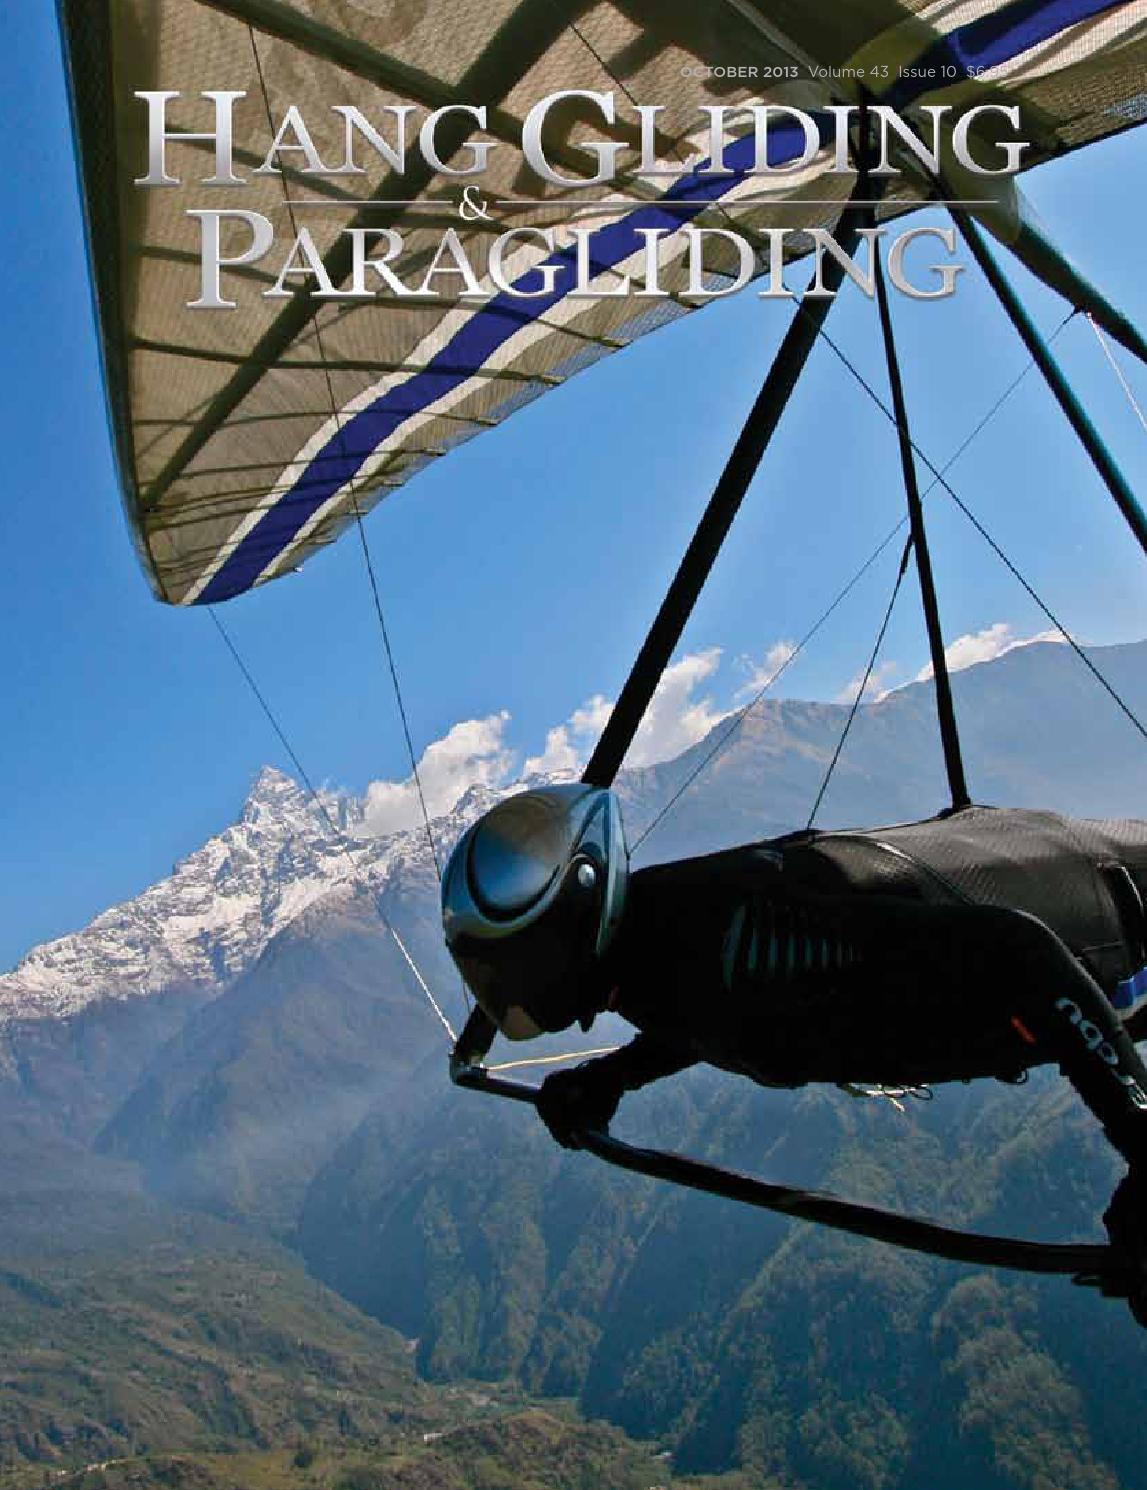 Hang Gliding & Paragliding Vol43/Iss10 Oct 2013 by US Hang Gliding